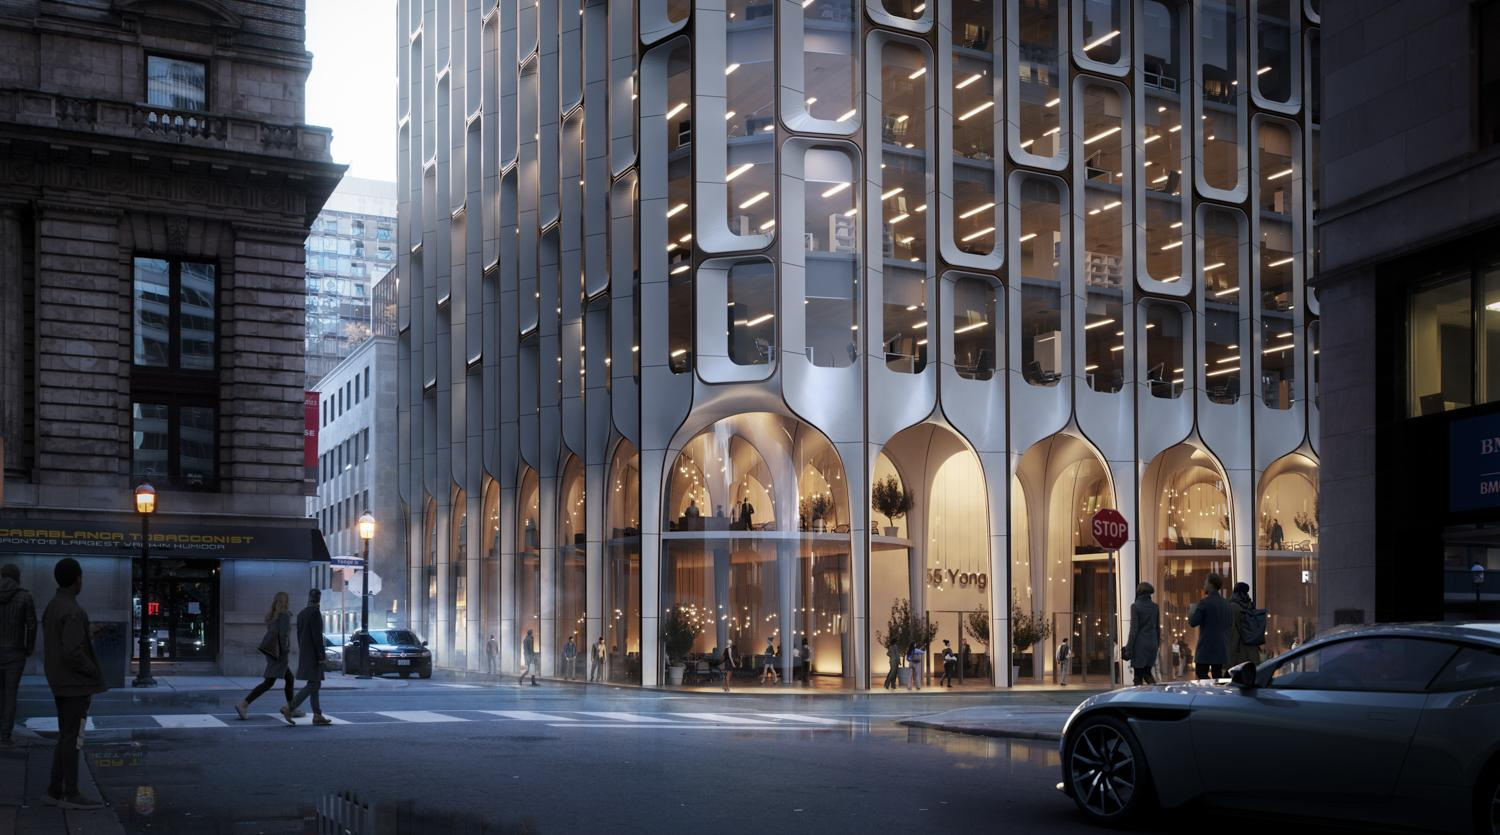 rendering of a office and condo podium with double height retail at grade with large glazed arches in the facade pattern